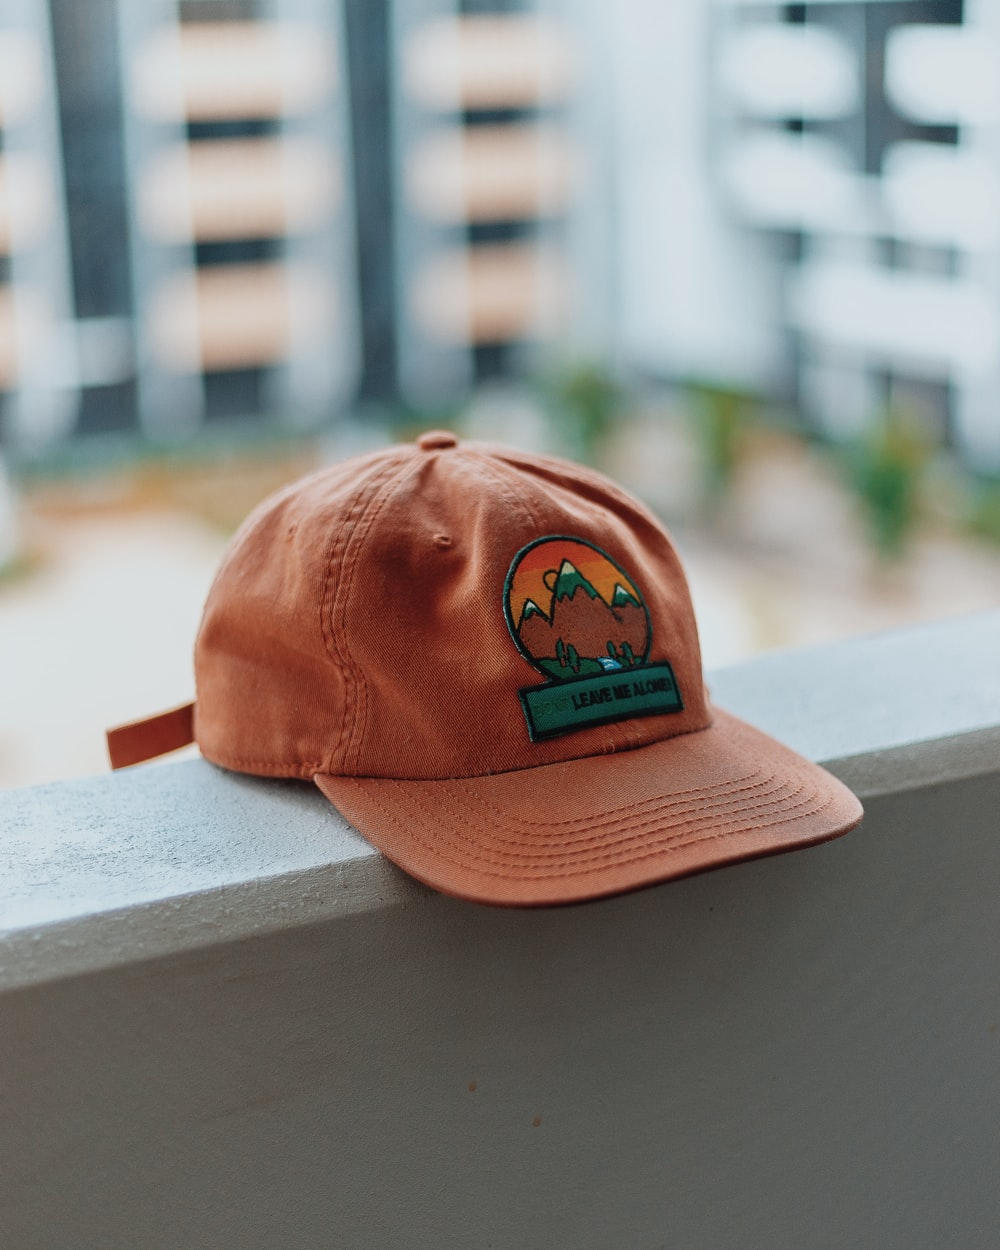 orange and green mountain embroidered cap on pavement